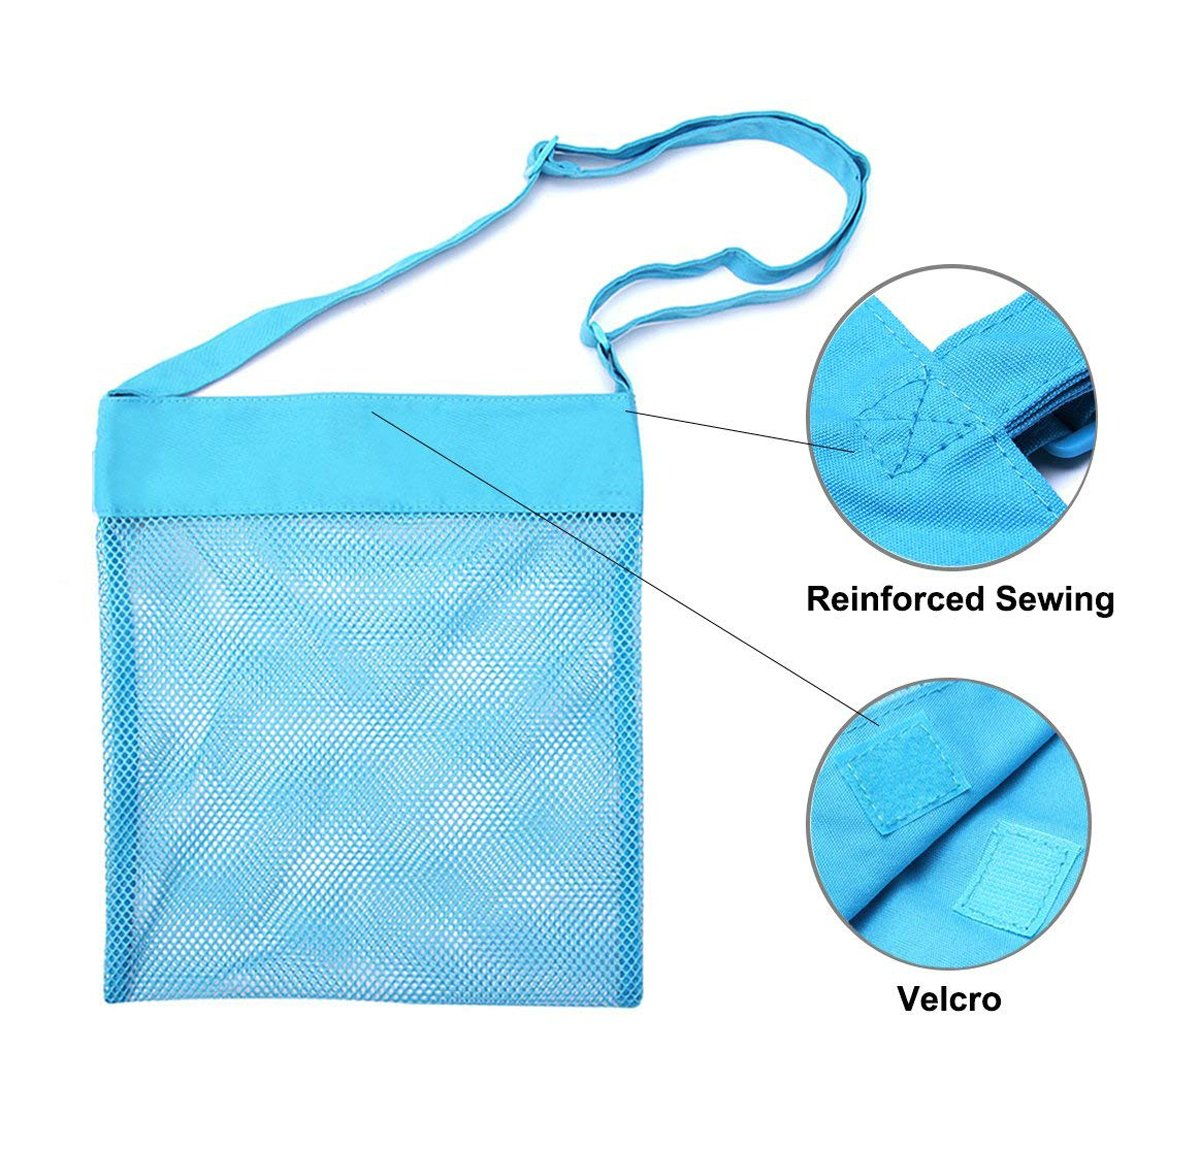 """Bylove 5 Pieces Colorful Mesh Beach Bags Breathable Sea Shell Bags Toy Storage Bags with Adjustable Carrying Straps (5 pieces, 9.8"""" x 9.4"""") by Bylove (Image #6)"""